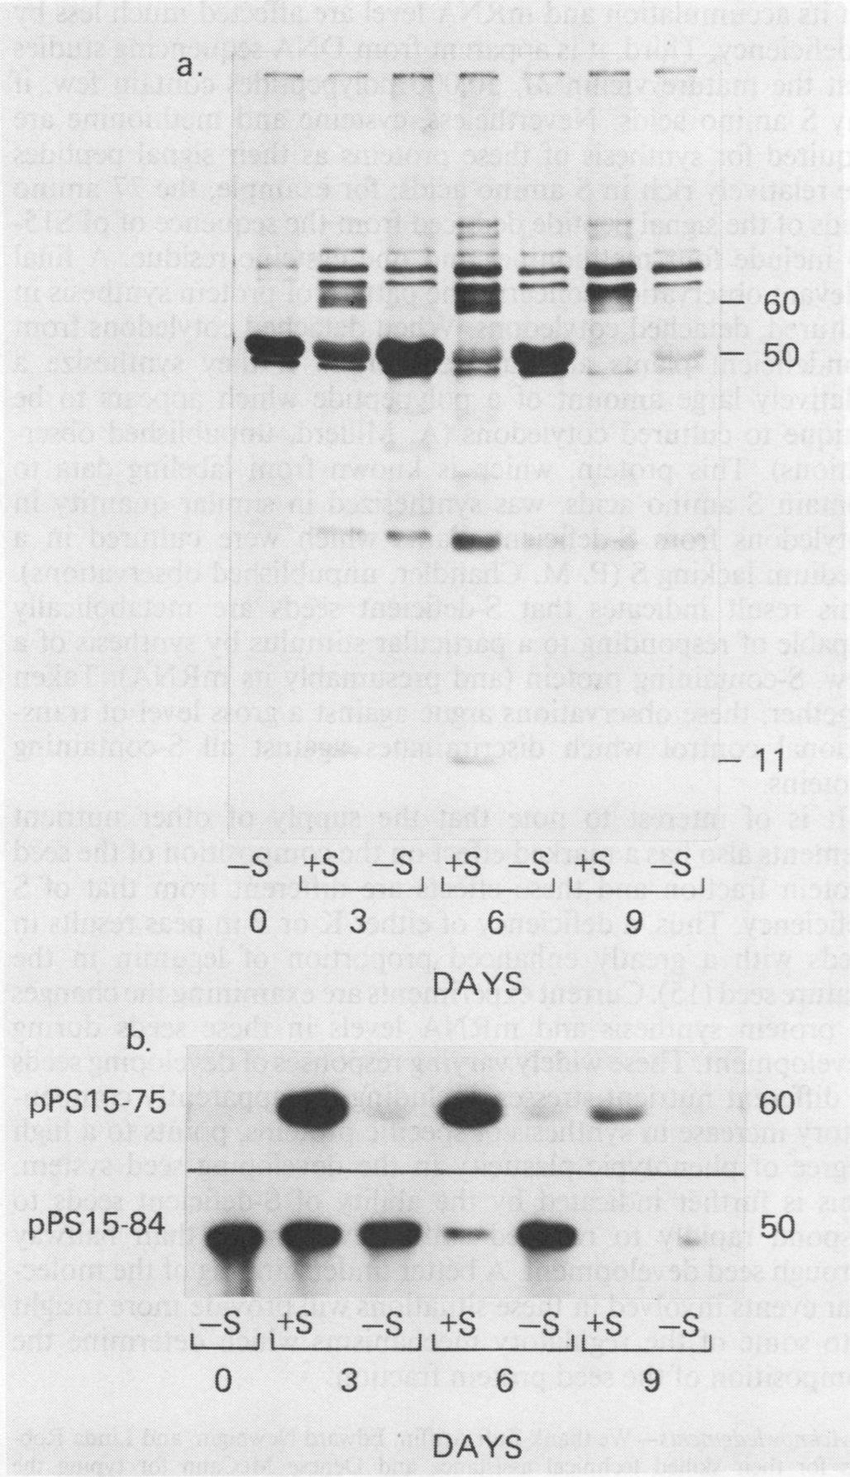 Polypeptide synthesis and mRNA levels in developing pea